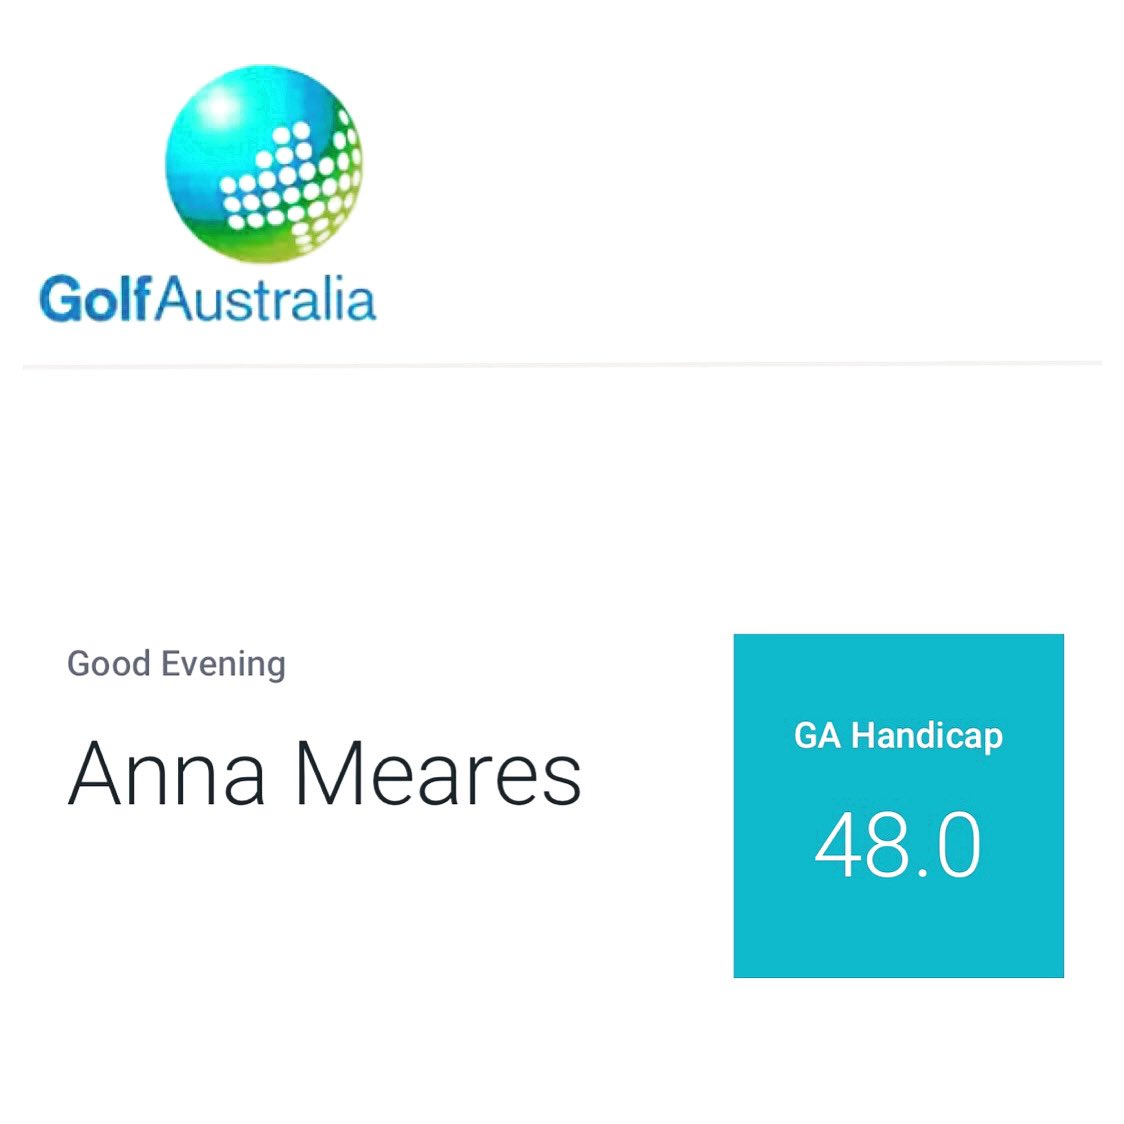 I HAVE A GOLF HANDICAP... and it's not the highest available! #winning thank you @GrangeGolf #ambassador https://t.co/sar4Sgk8RE